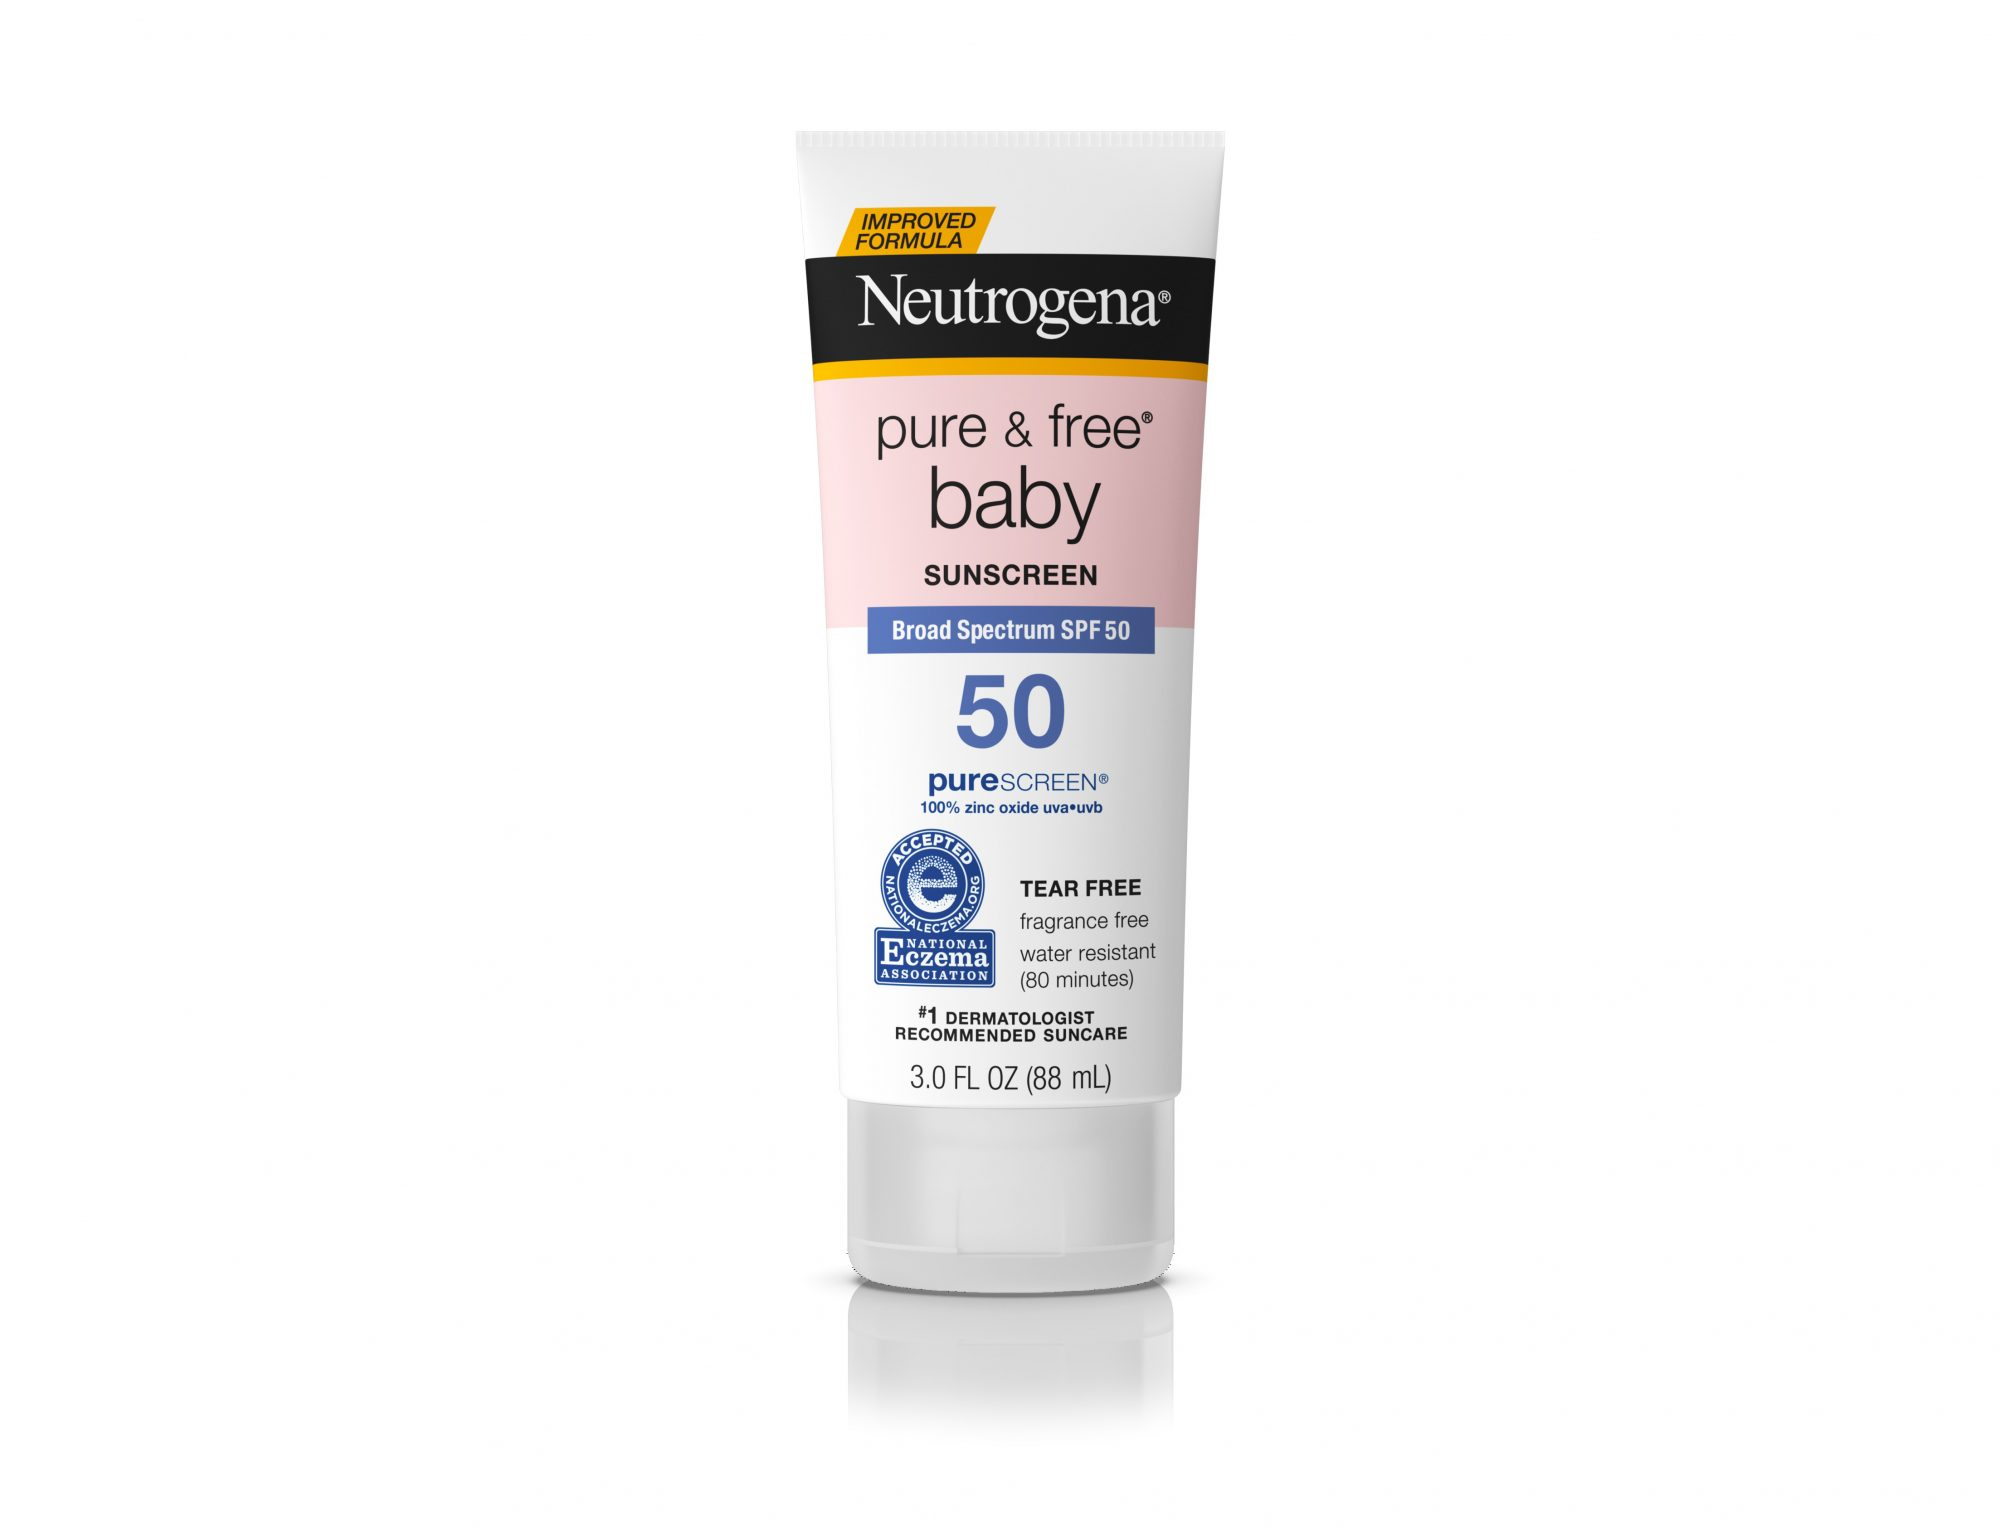 Neutrogena Pure & Free Baby Mineral Sunscreen with SPF 50